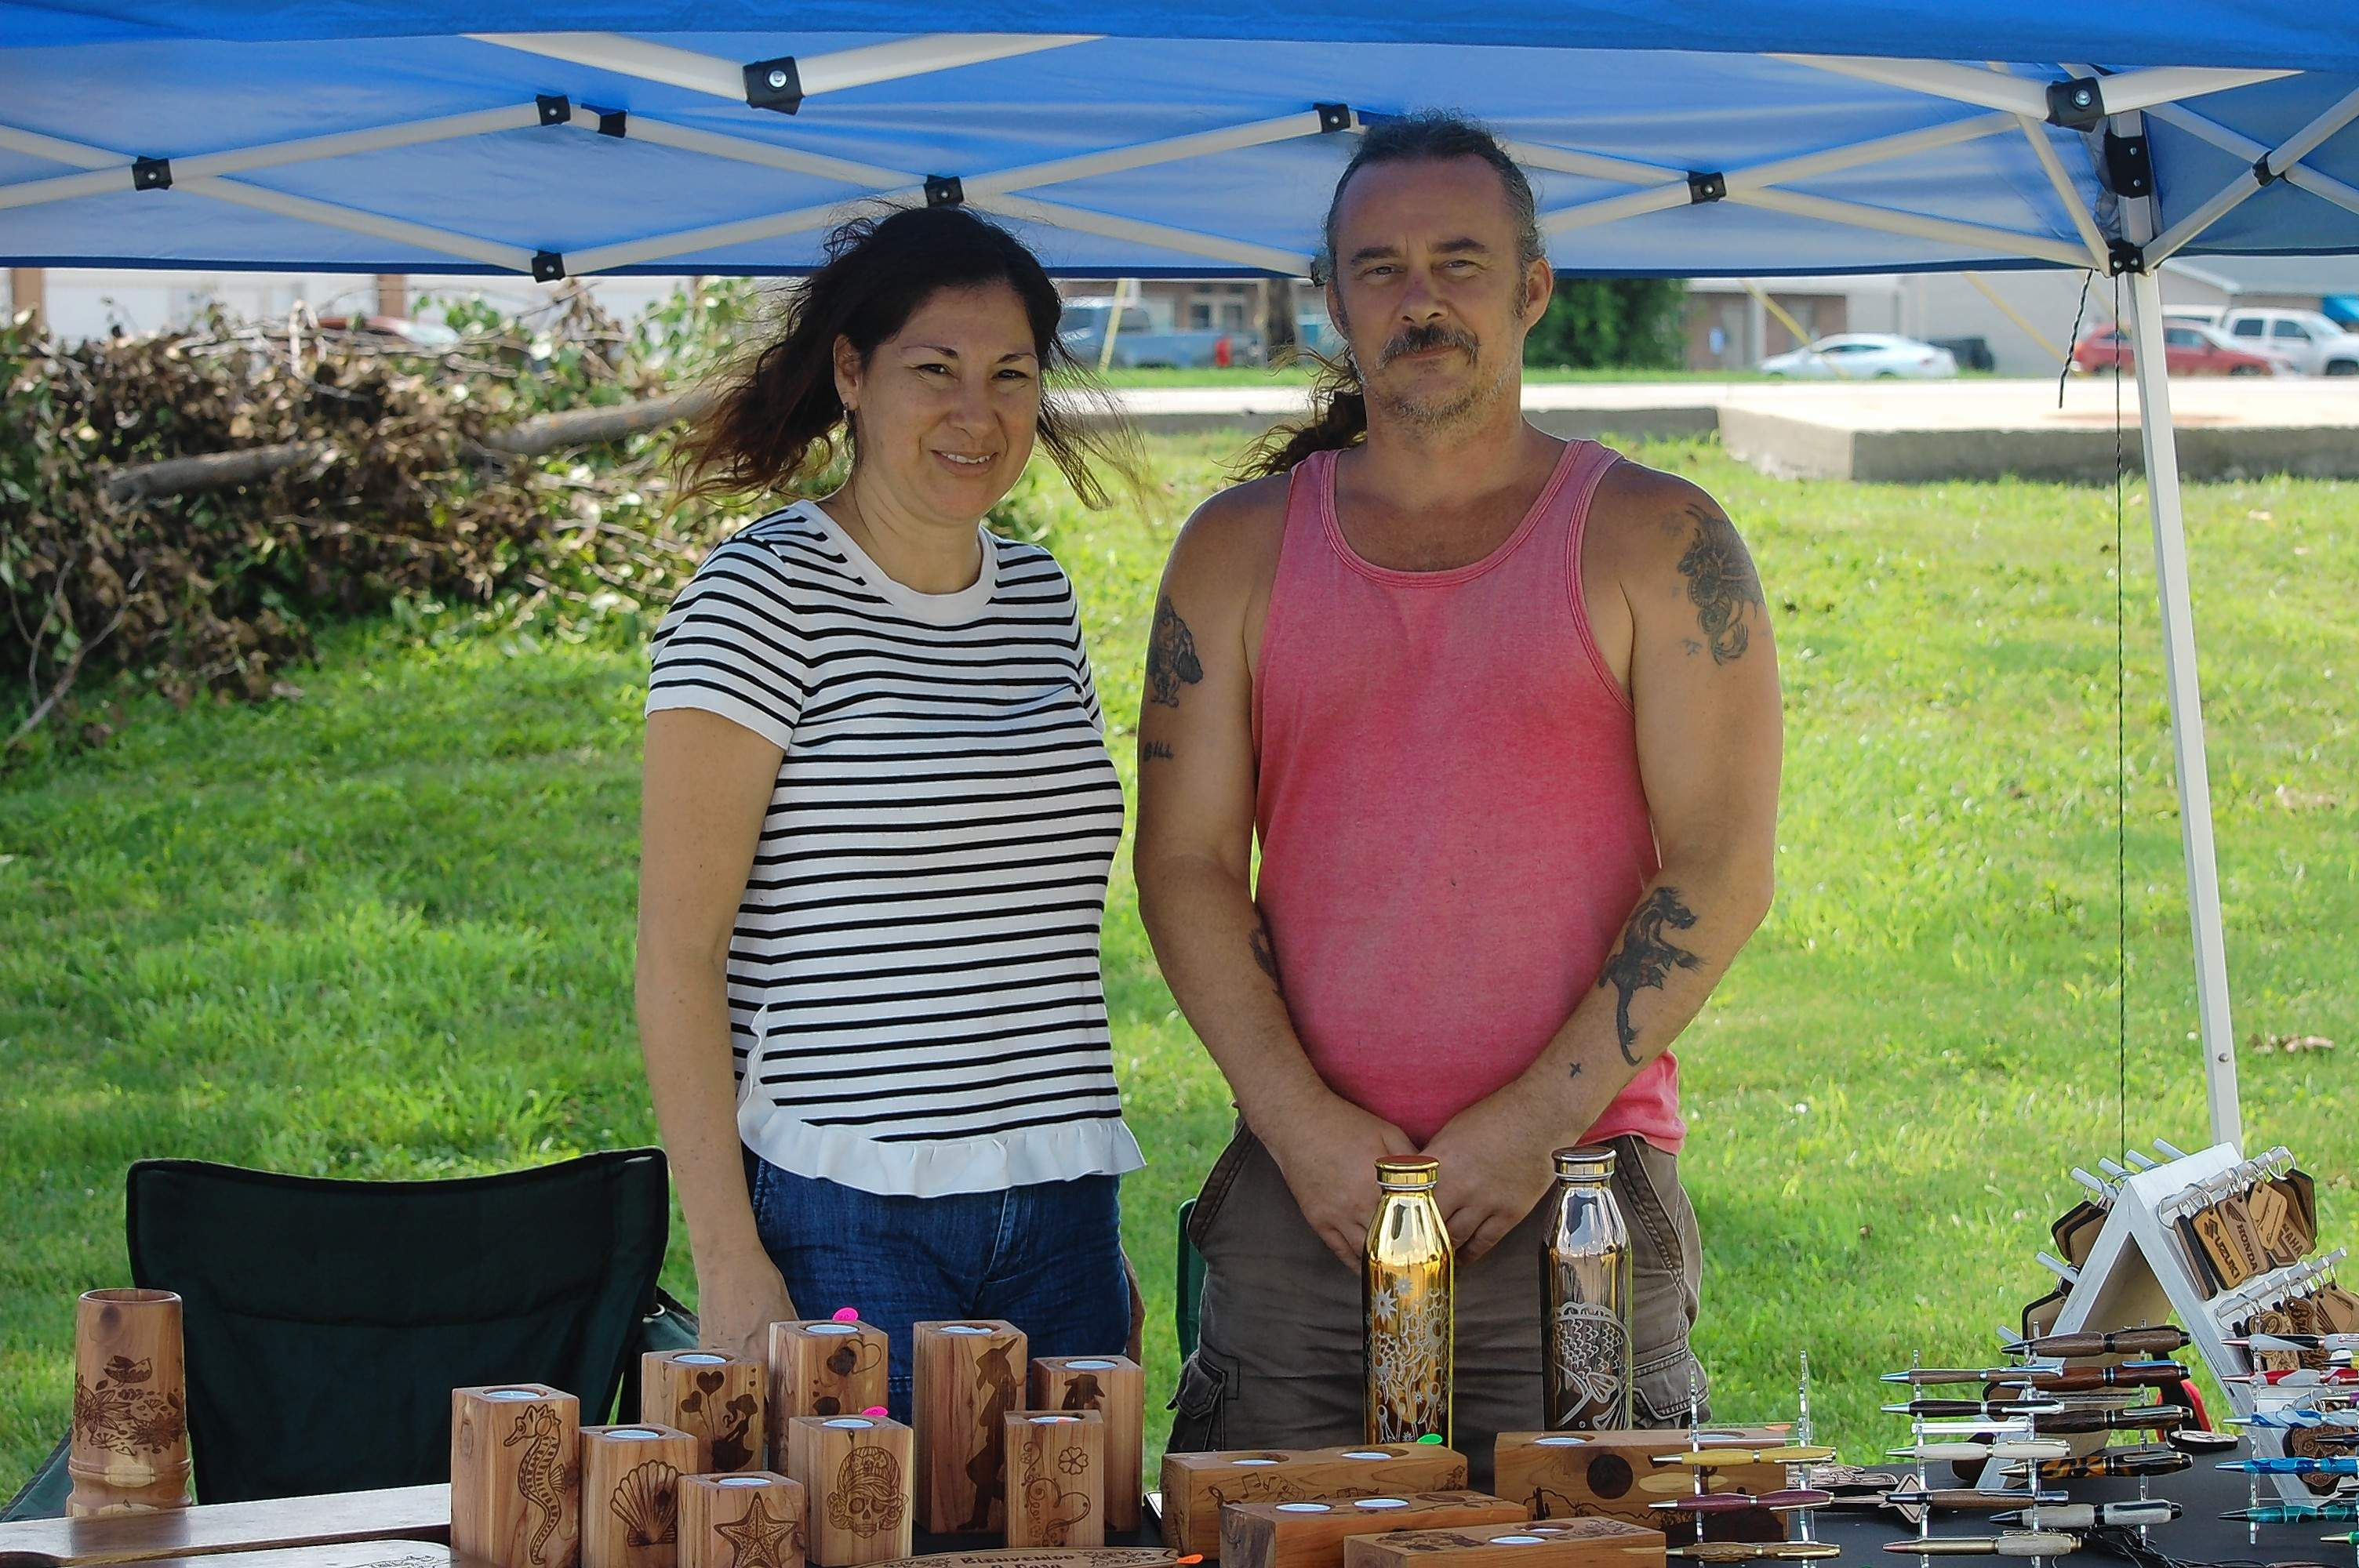 Bill Dunstan of Golconda and Maggie Muniz, originally from Puerto Rico, display some of their woodcraft items for sale.